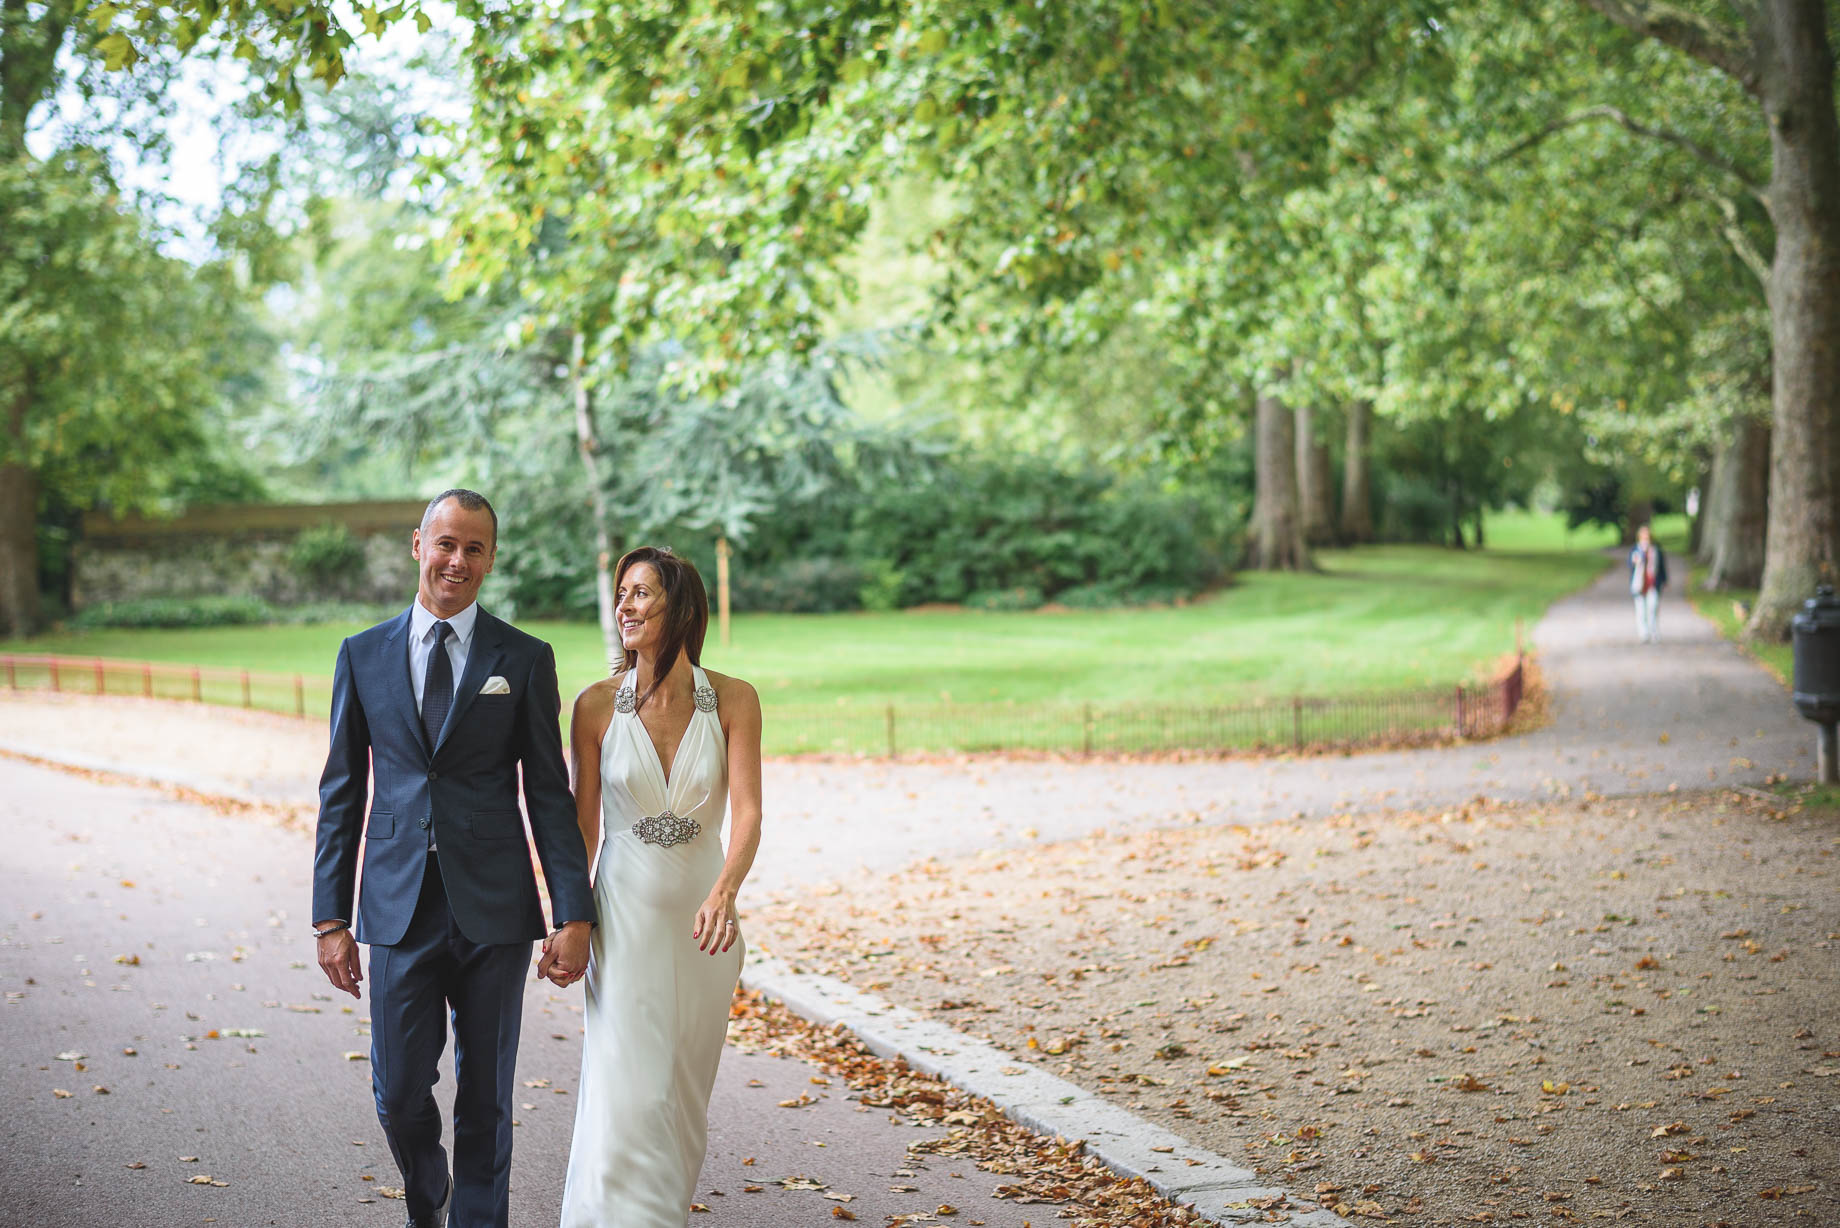 Chelsea and Mayfair wedding photography - Guy Collier - Vicki and Damien (82 of 126)